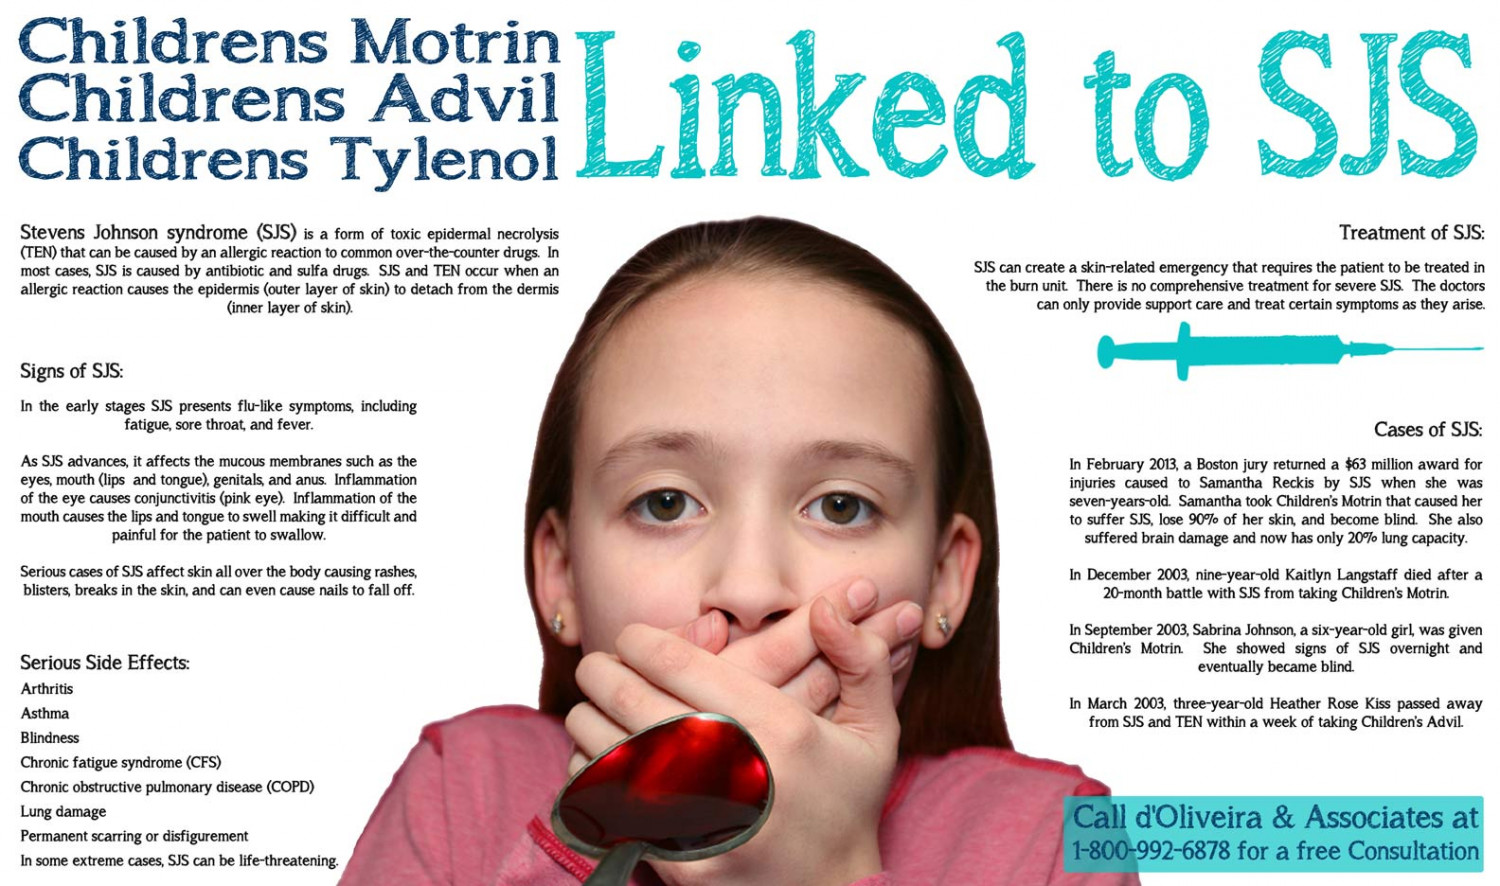 sjs-lawyer-childrens-motrin-advil-tylenol-linked-to-stevens-johnson-syndrome-infographic Infographic